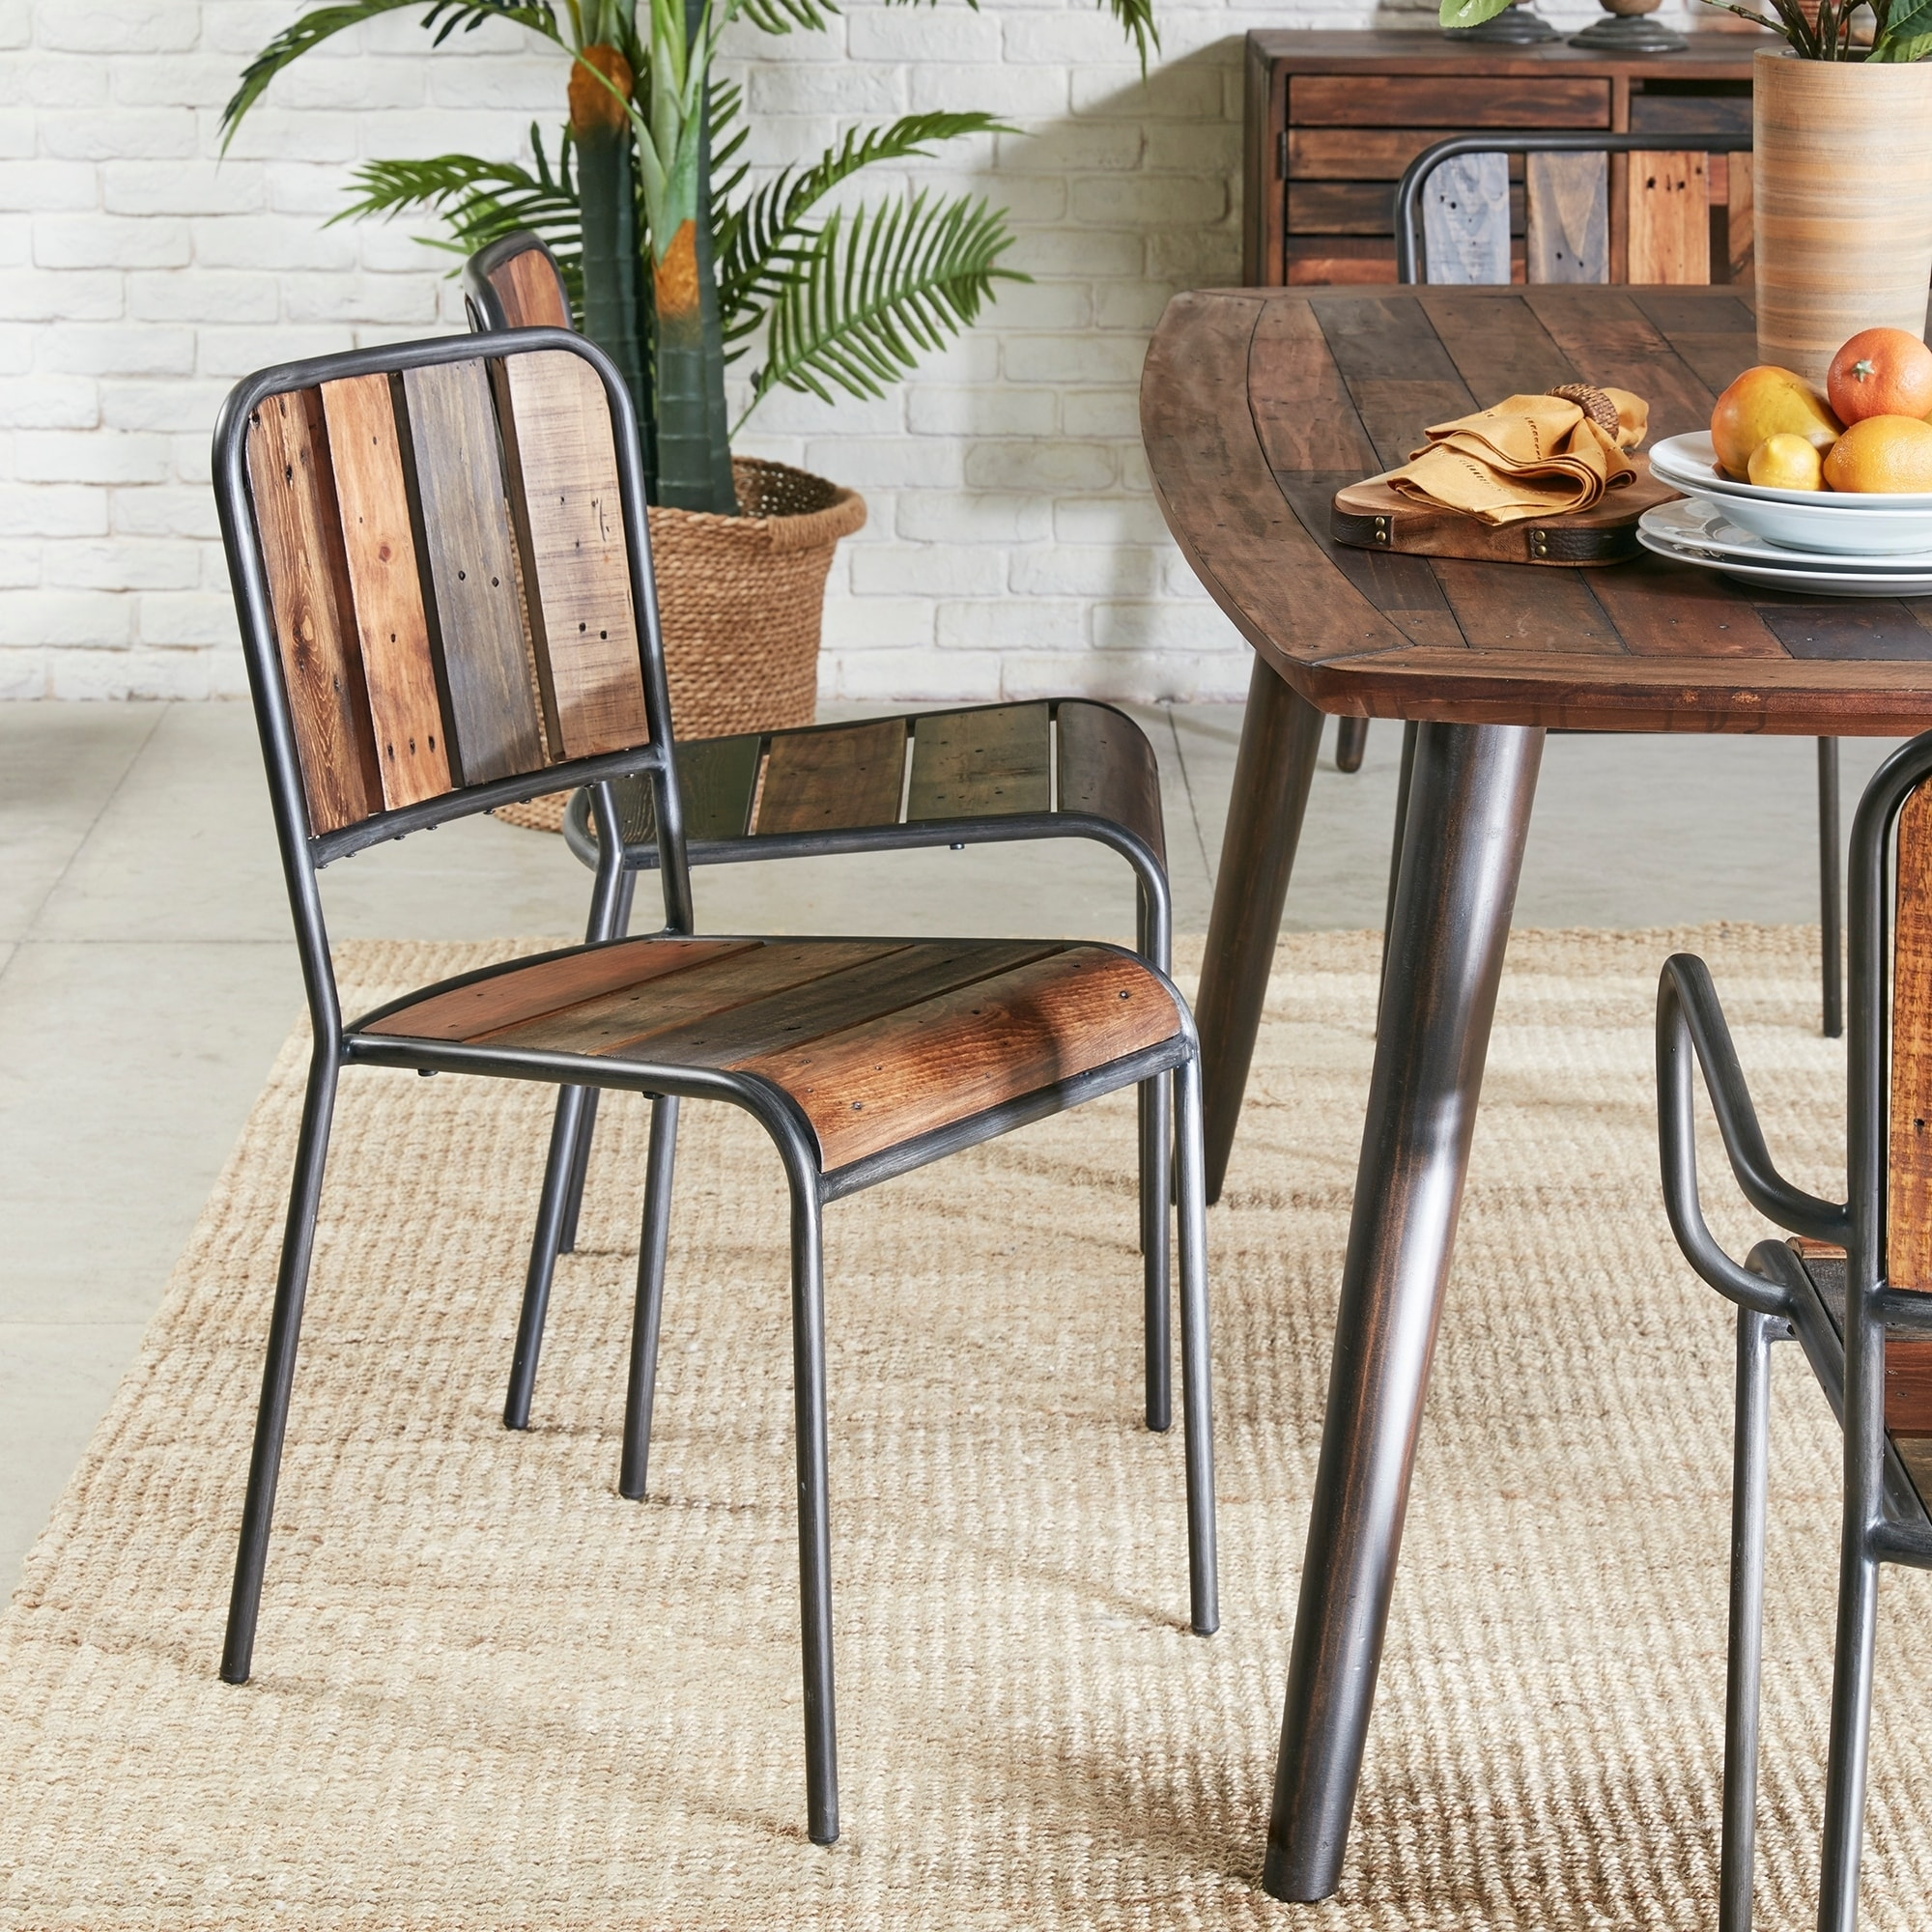 Light Brown Dining Chairs - Dining room ideas